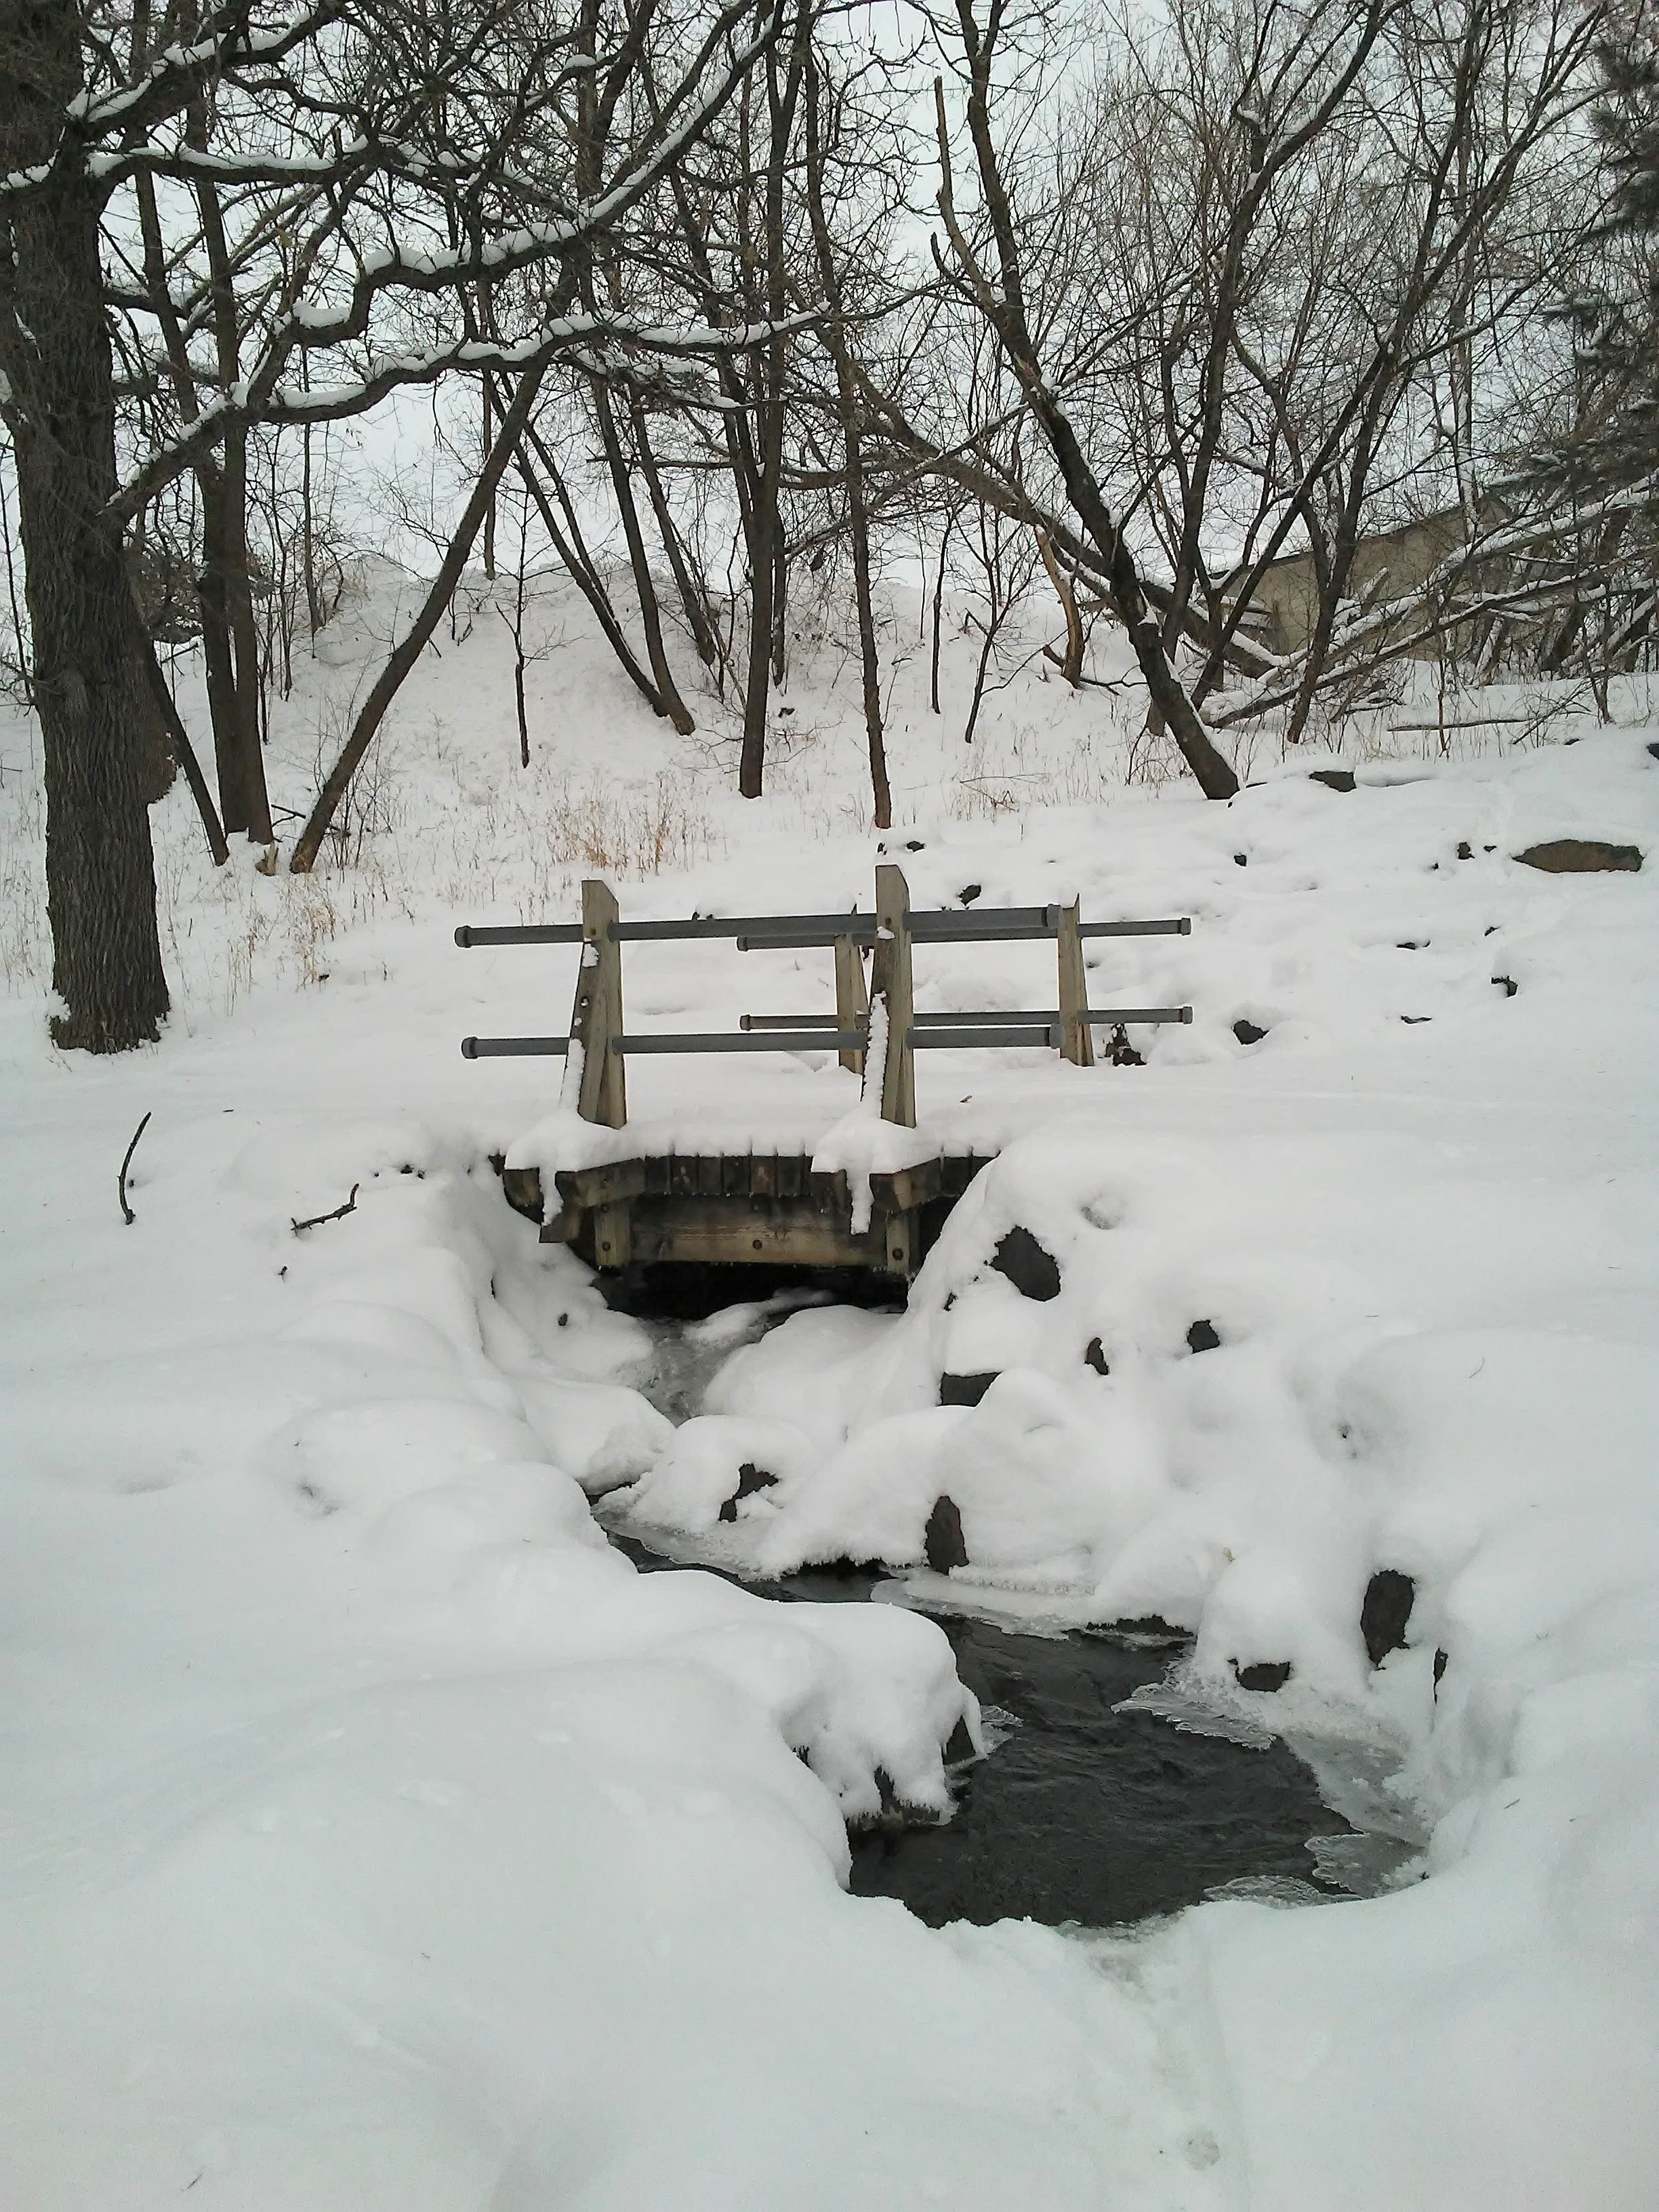 wood bridge, trees, snow, water.